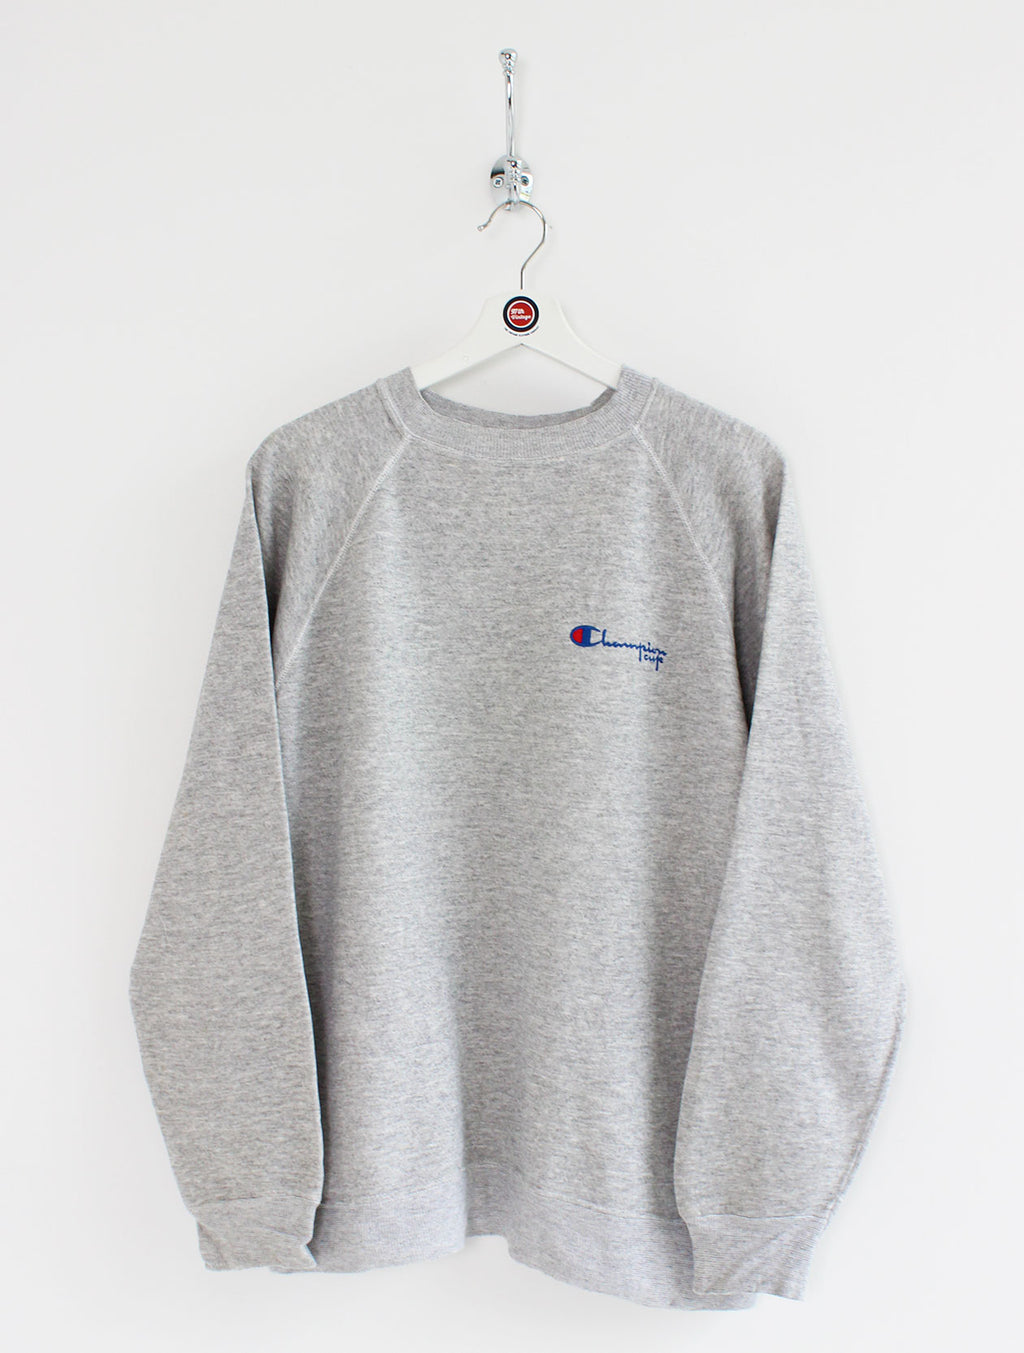 Champion Sweatshirt (M)